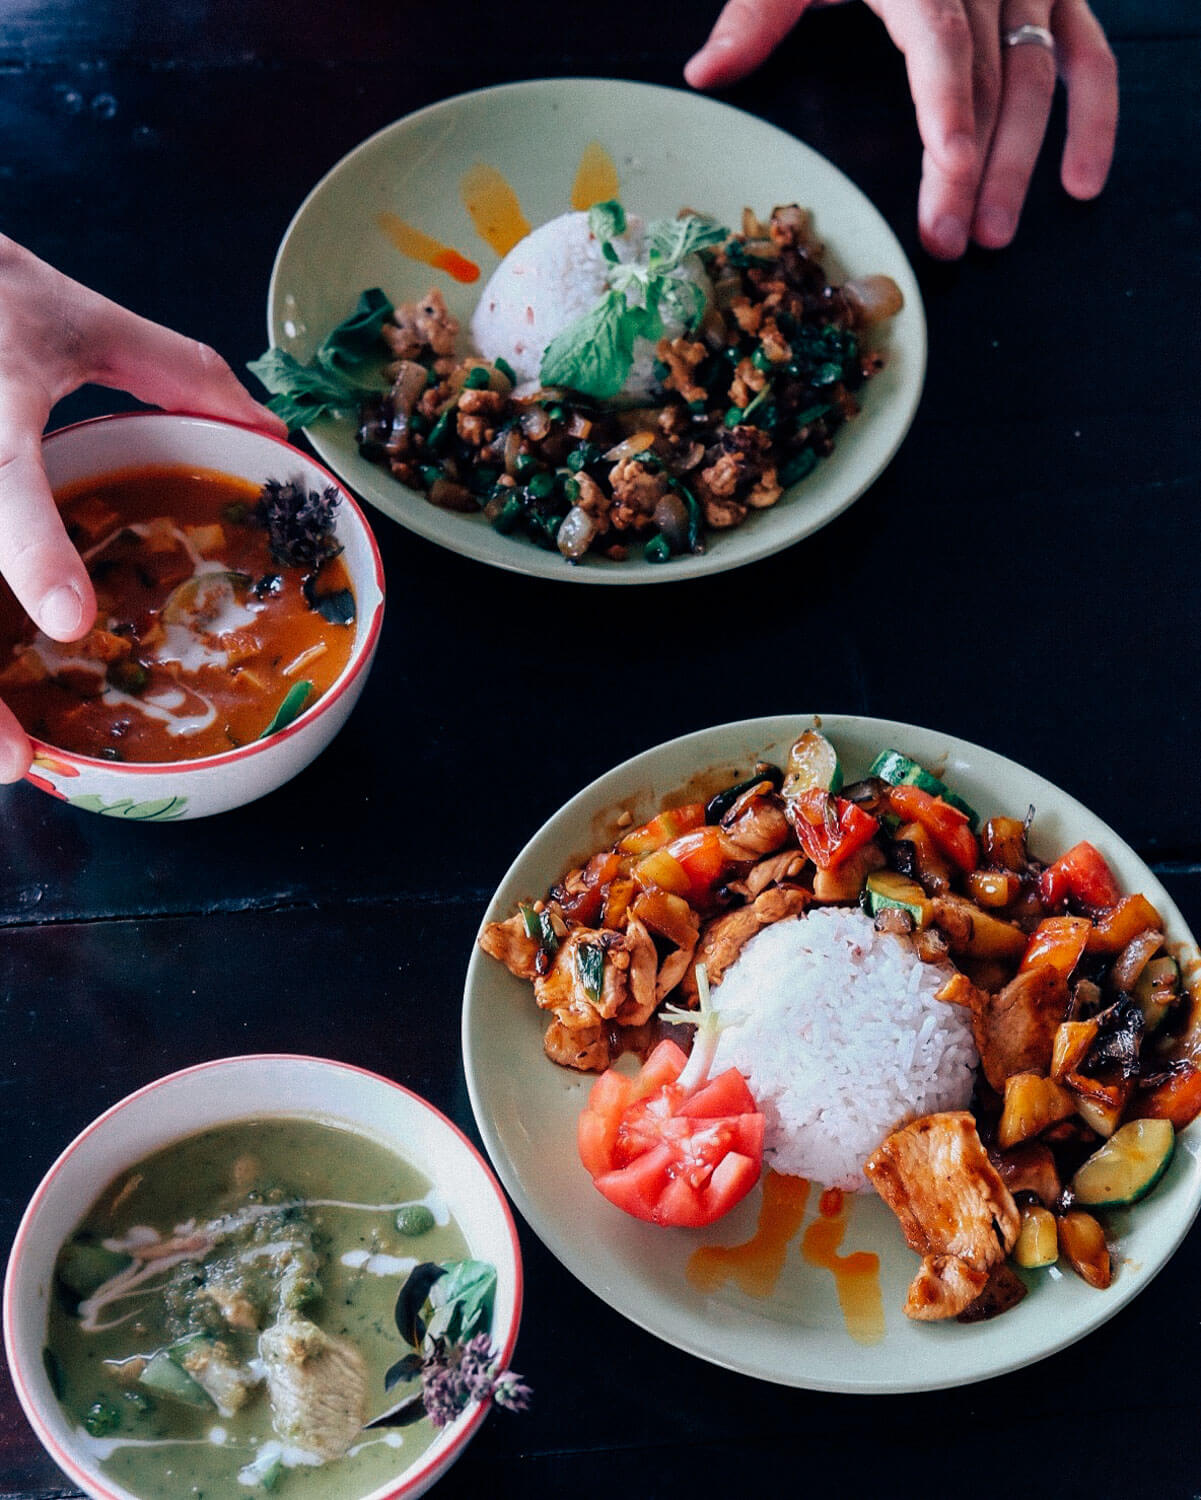 """Thai Farm Cooking School, Chiang Mai. Travel photography and guide by © Natasha Lequepeys for """"And Then I Met Yoko"""". #thailand #travelguide #travelphotography #travelitinerary #fujifilm #foodie"""